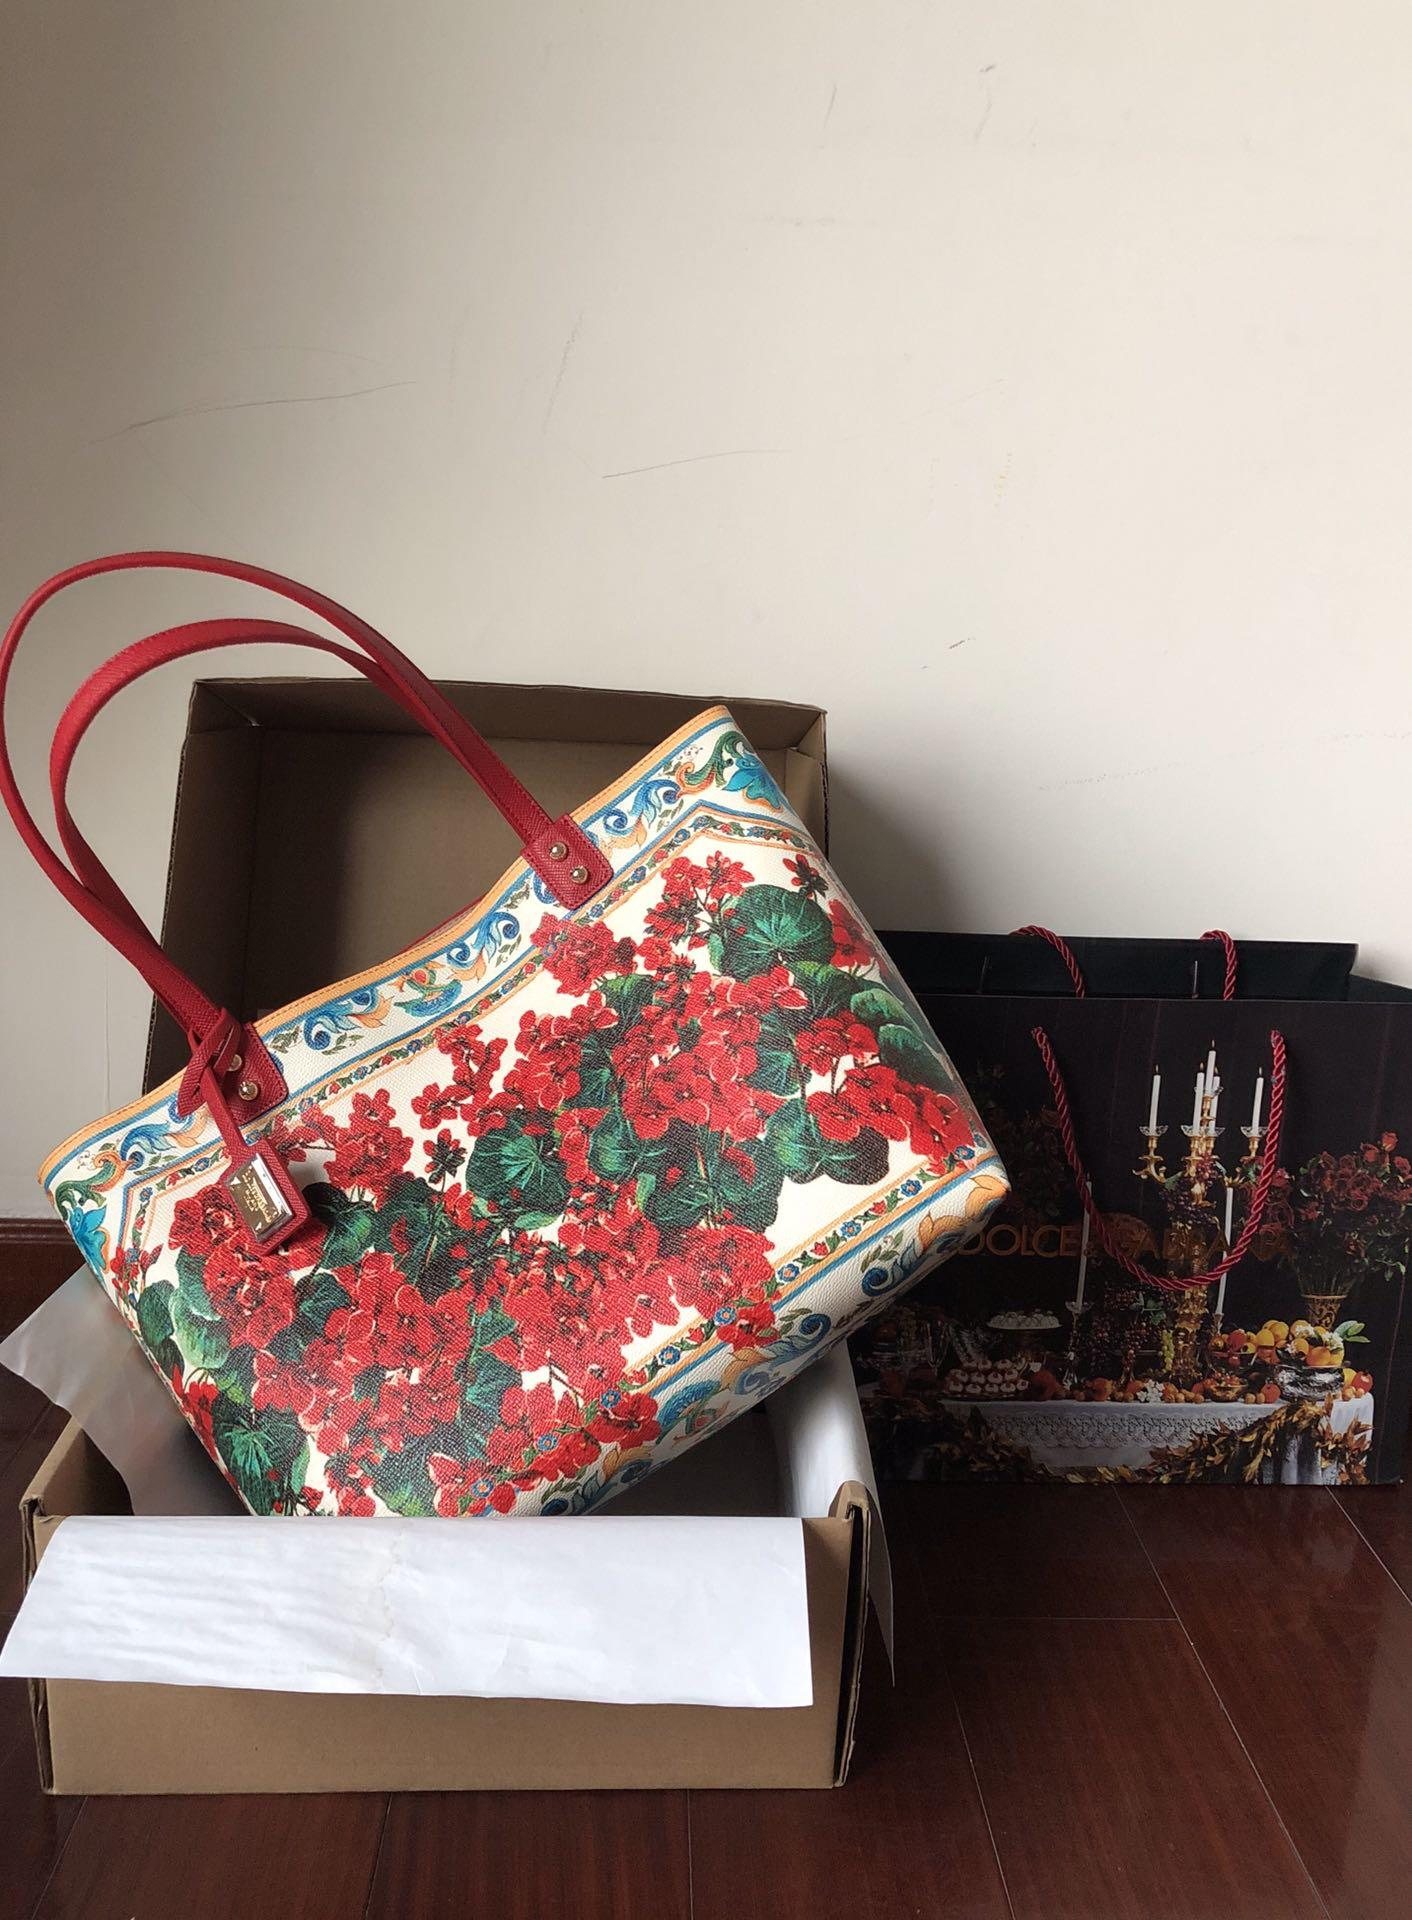 New Replica Dolce & Gabbana Women Shopping Bag